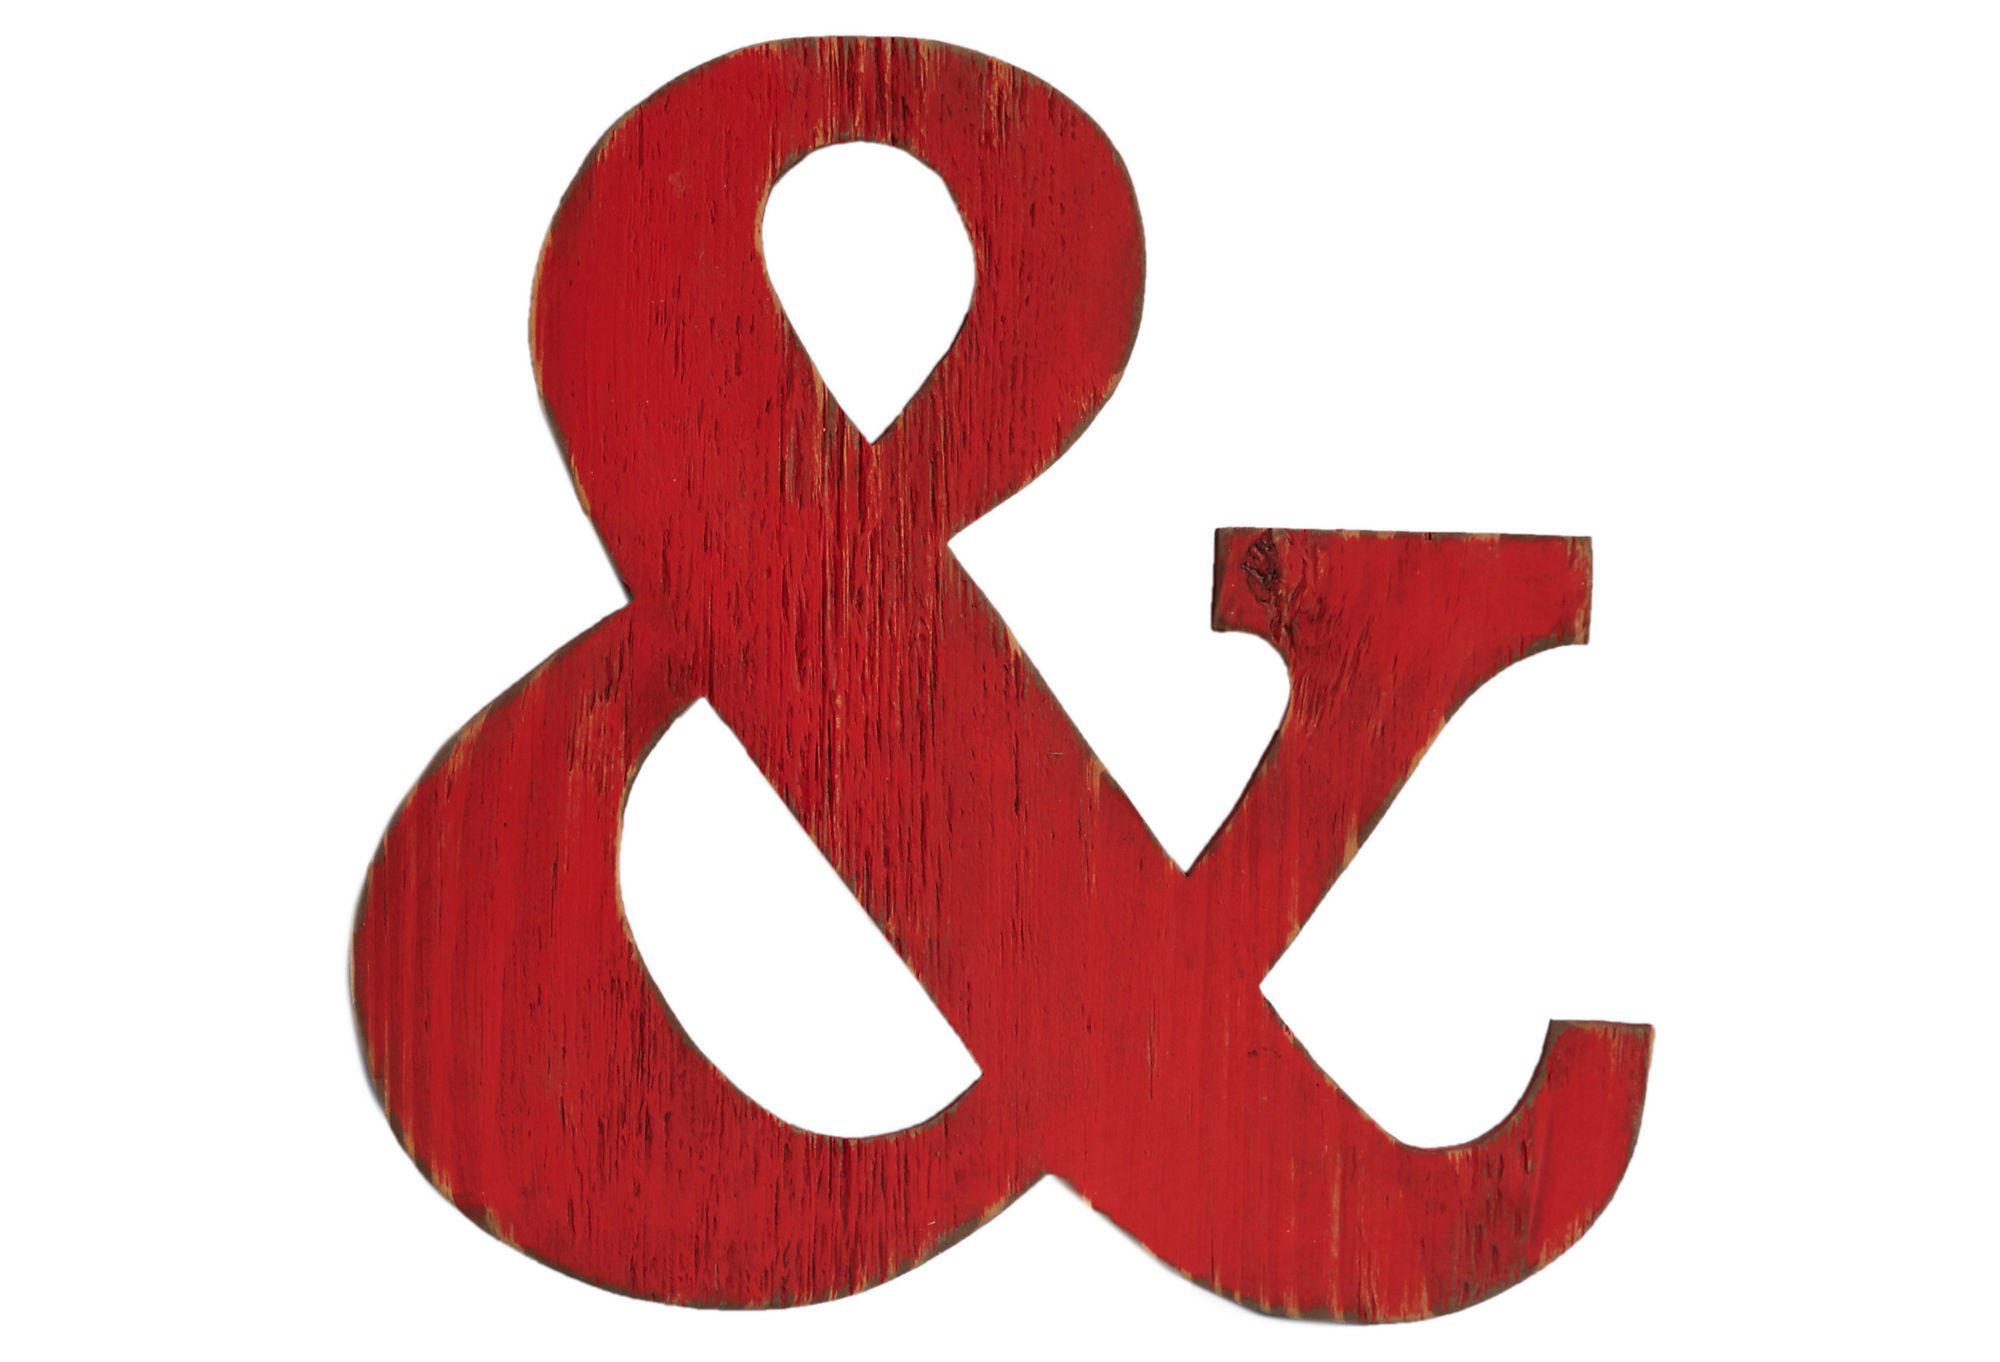 24 ampersand decor brick orange signs from one kings lane for Ampersand decor